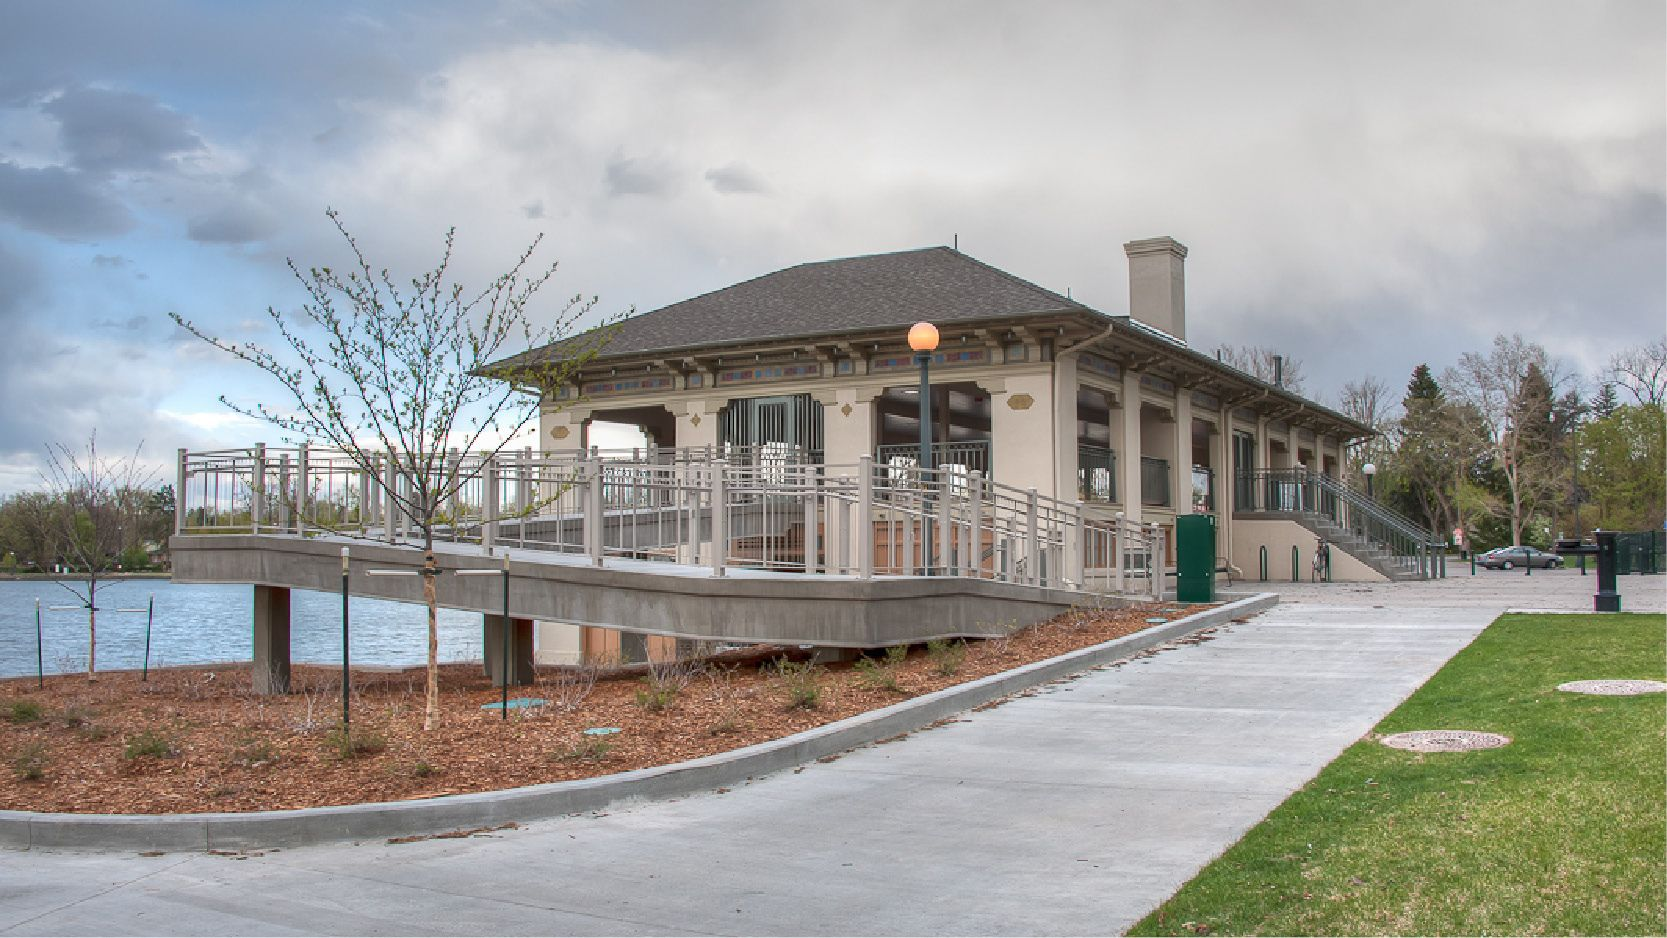 Image result for washington park boathouse denver